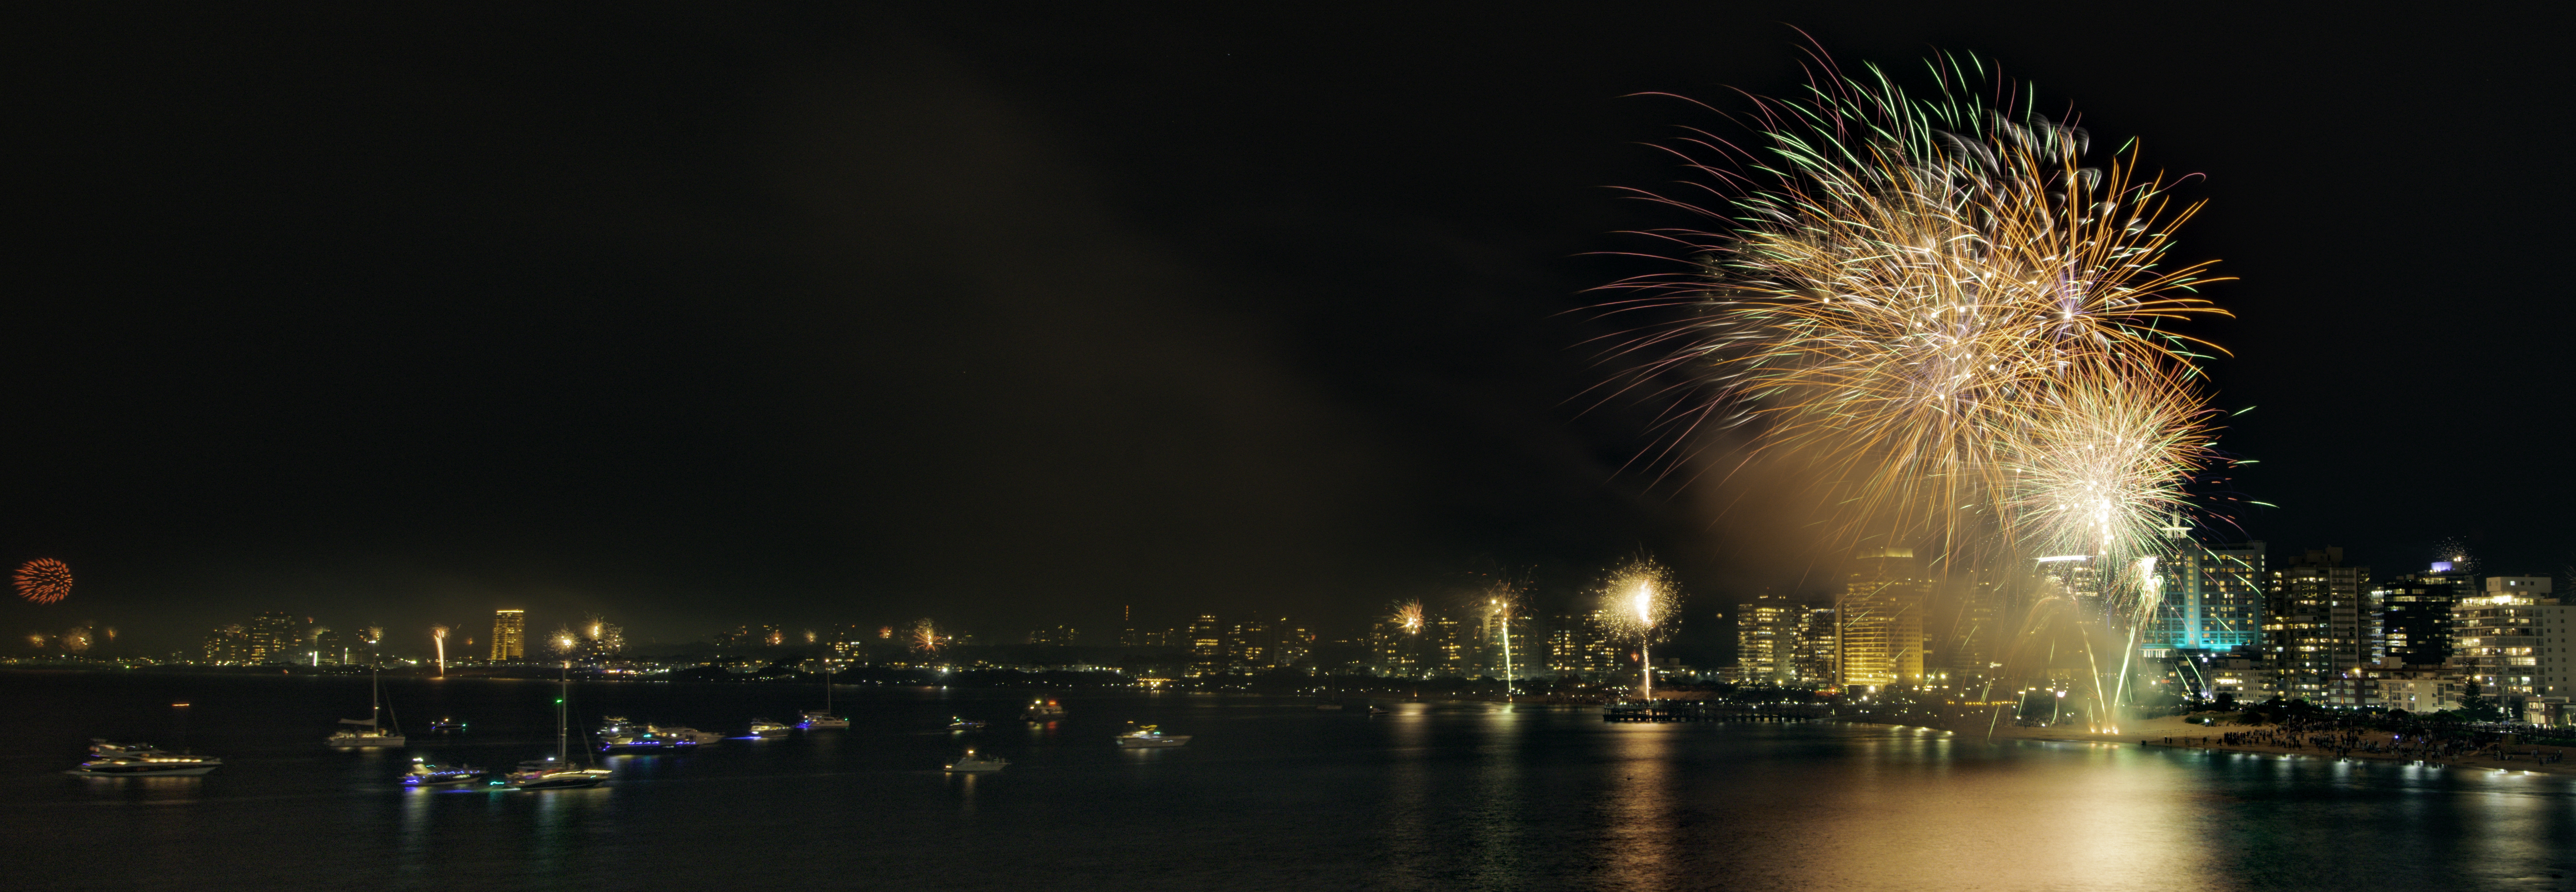 New Year's Eve in Punta del Este | New Year's Eve in South America